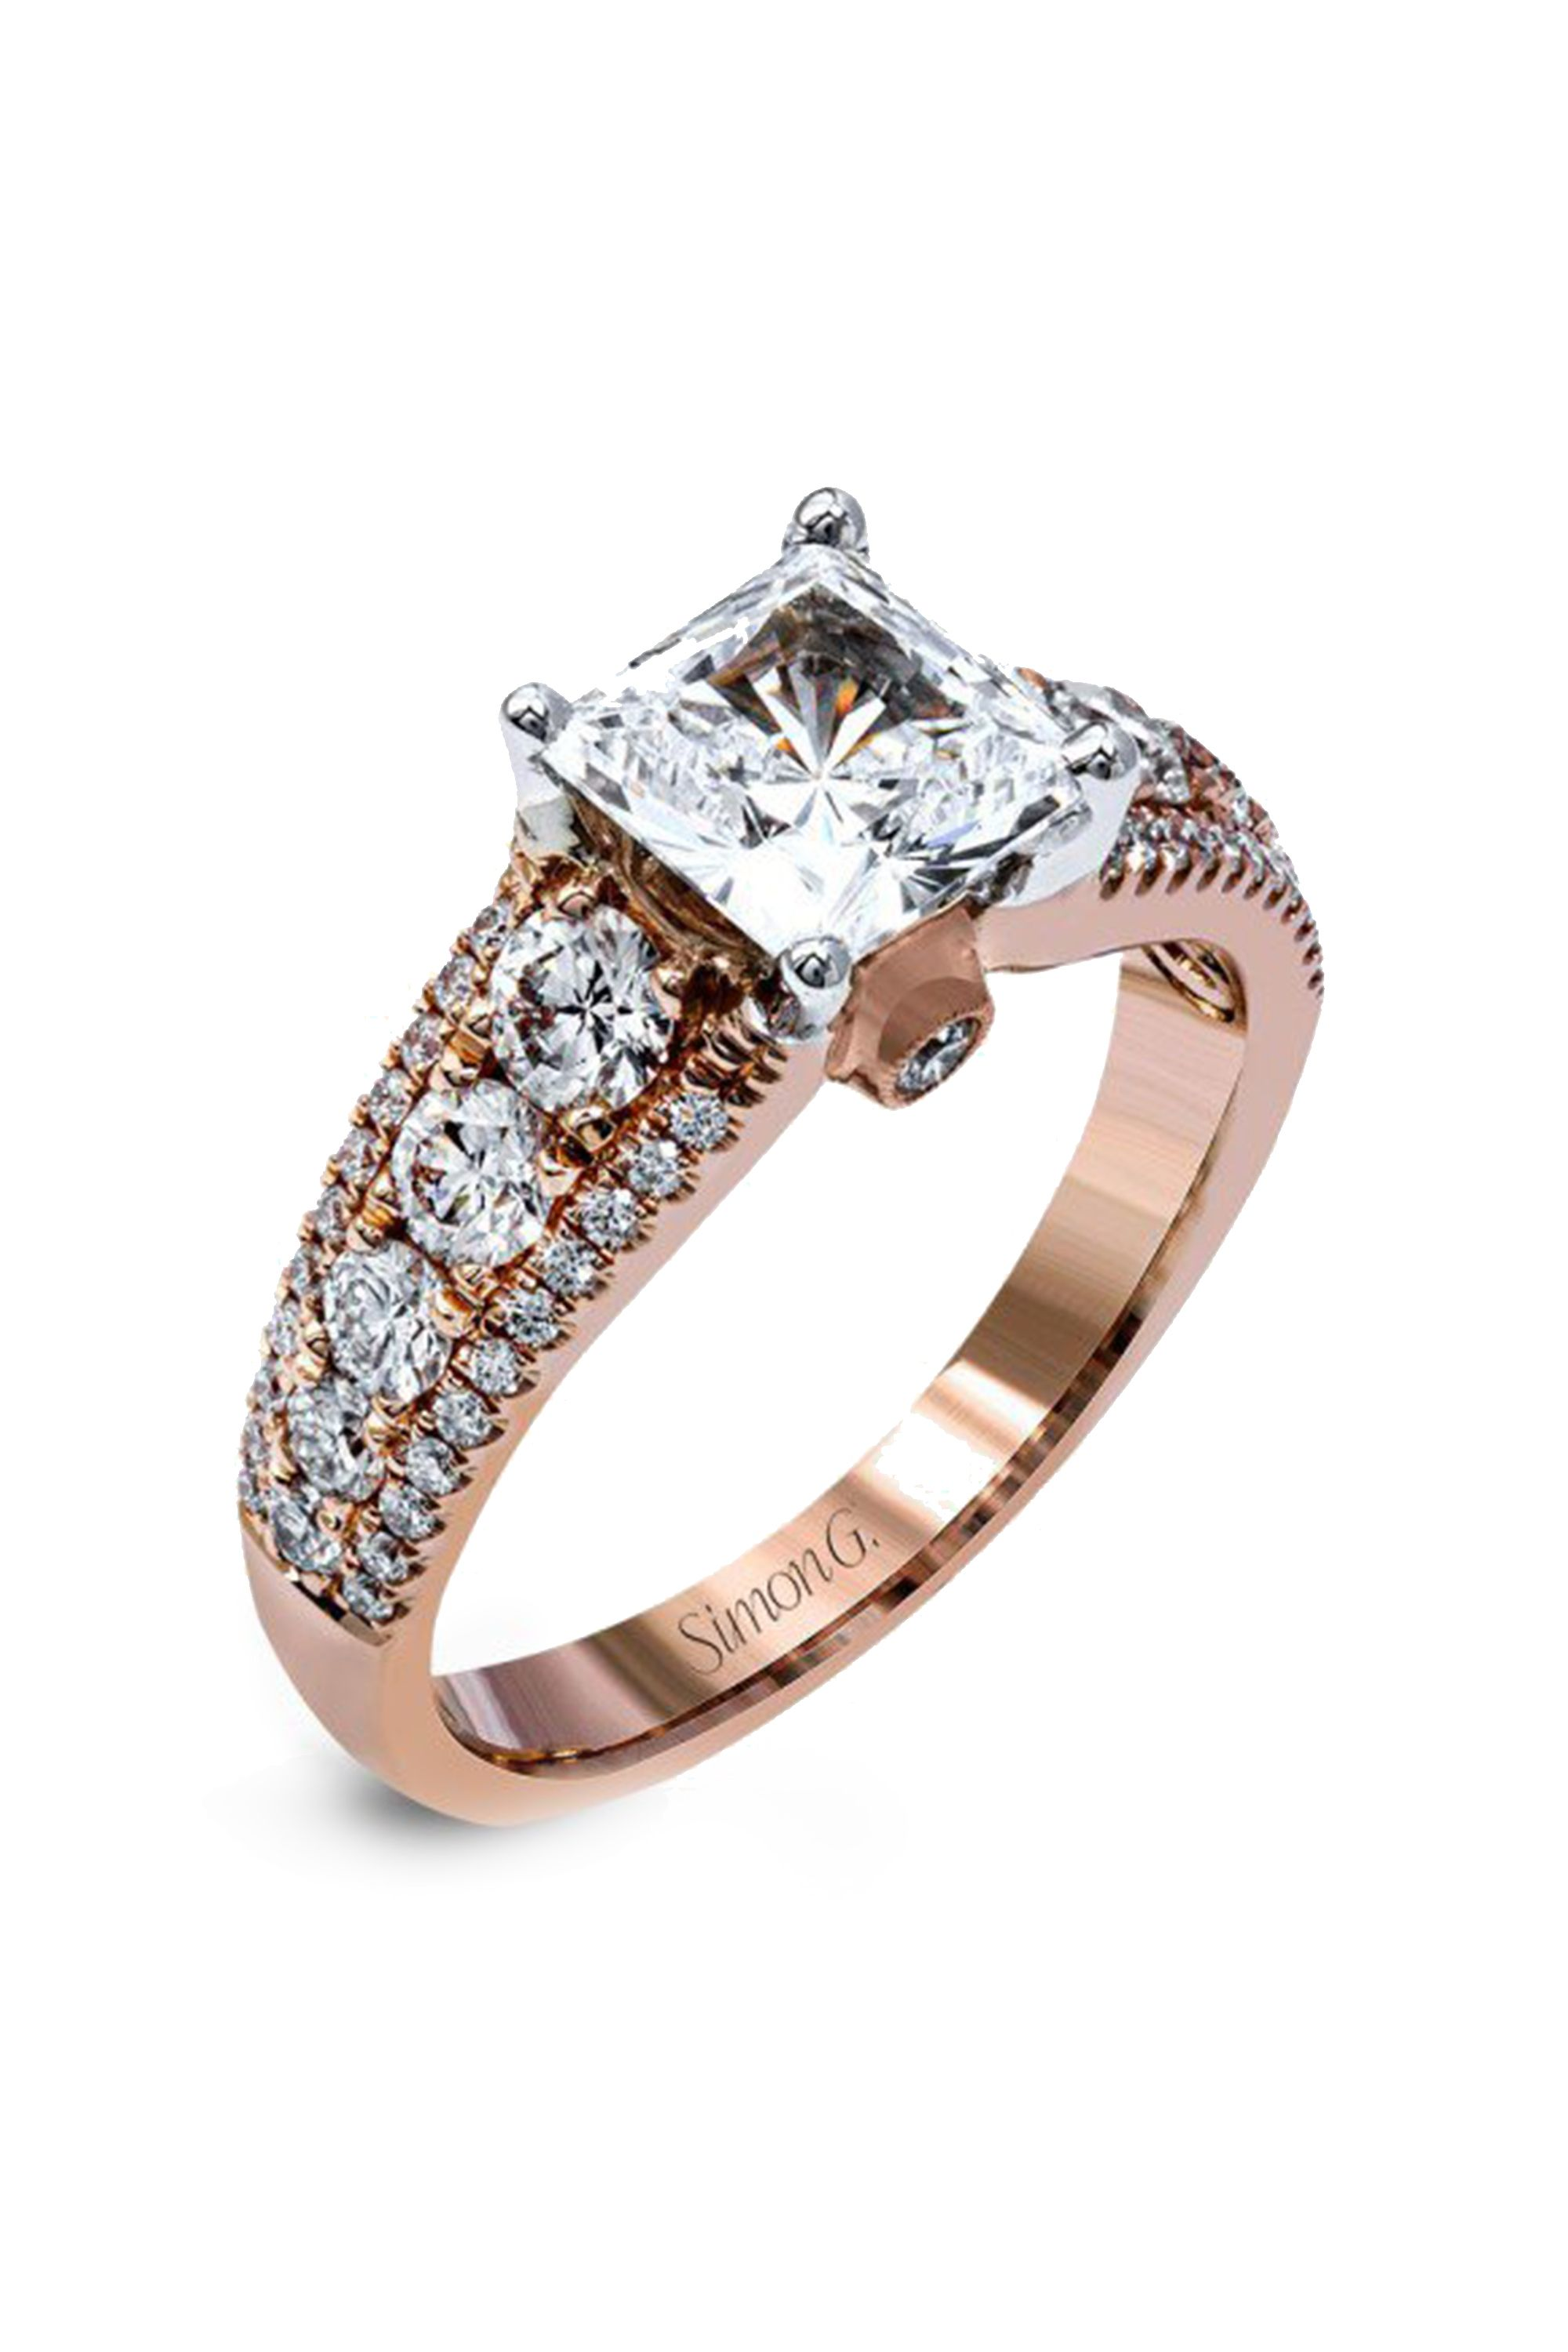 wedding women men and gold s goldsmiths matching band bands sets galleries mccaul rose platinum